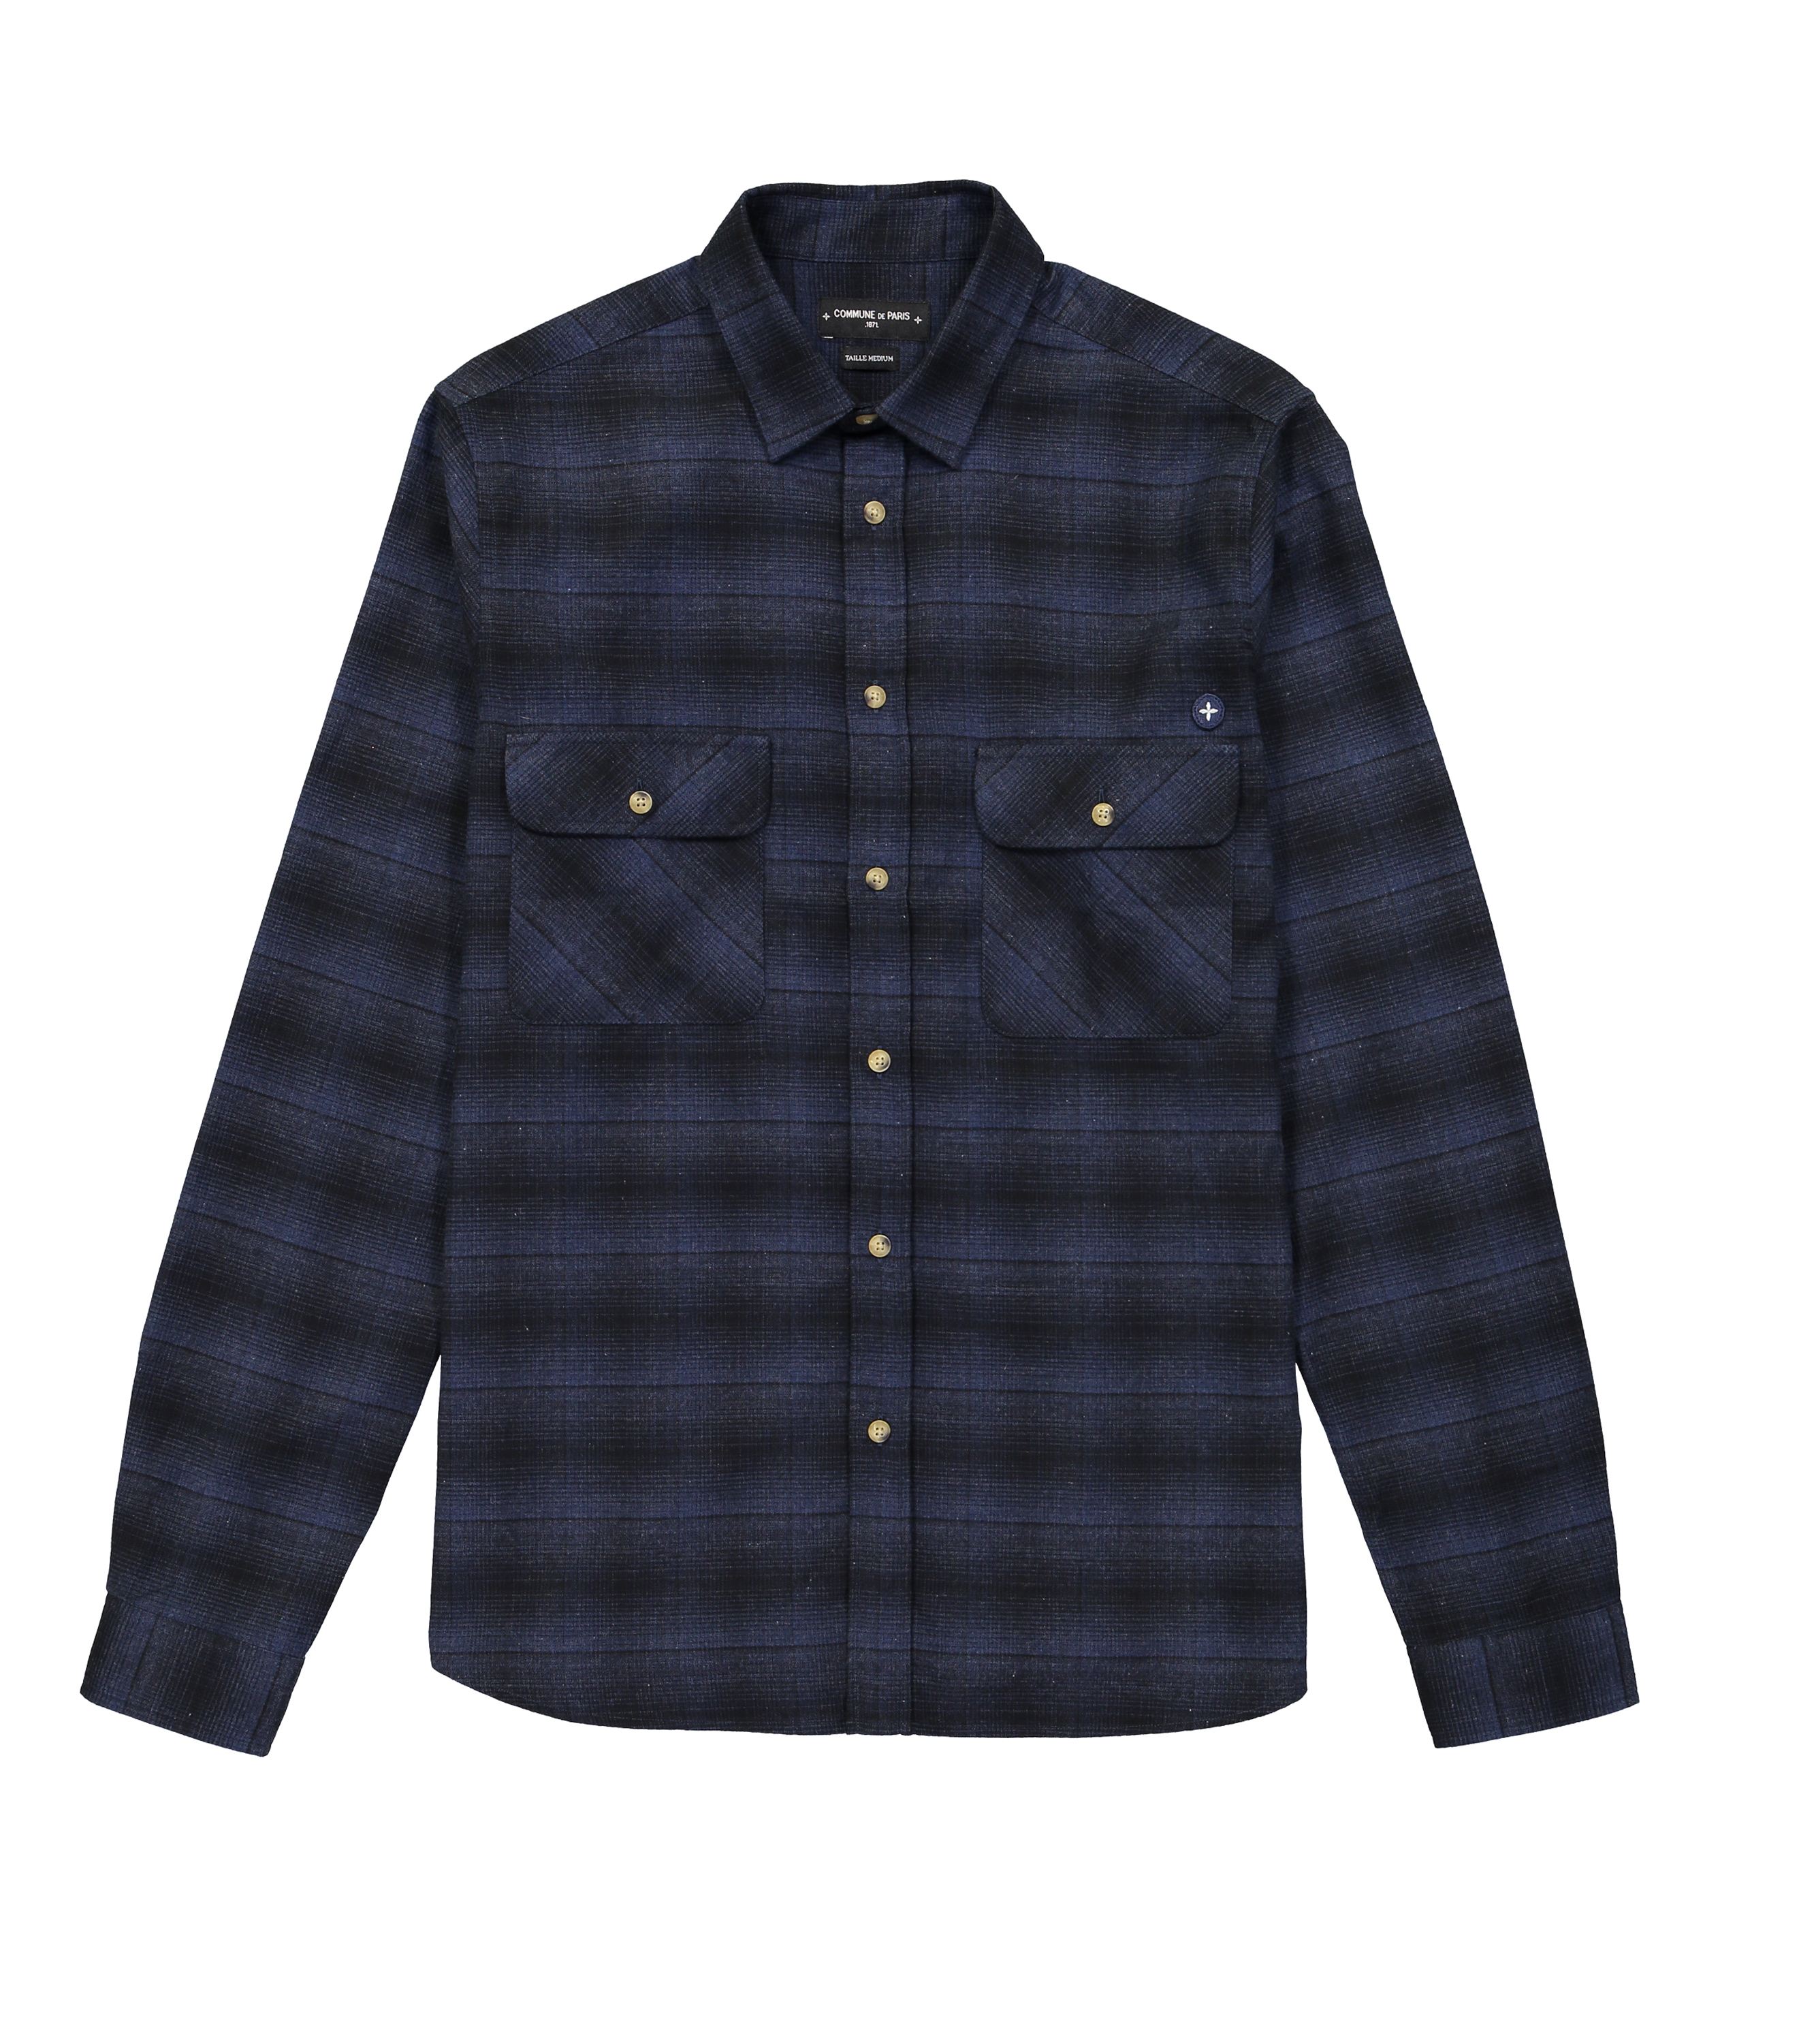 SHIRT FERDINAND - Navy checks